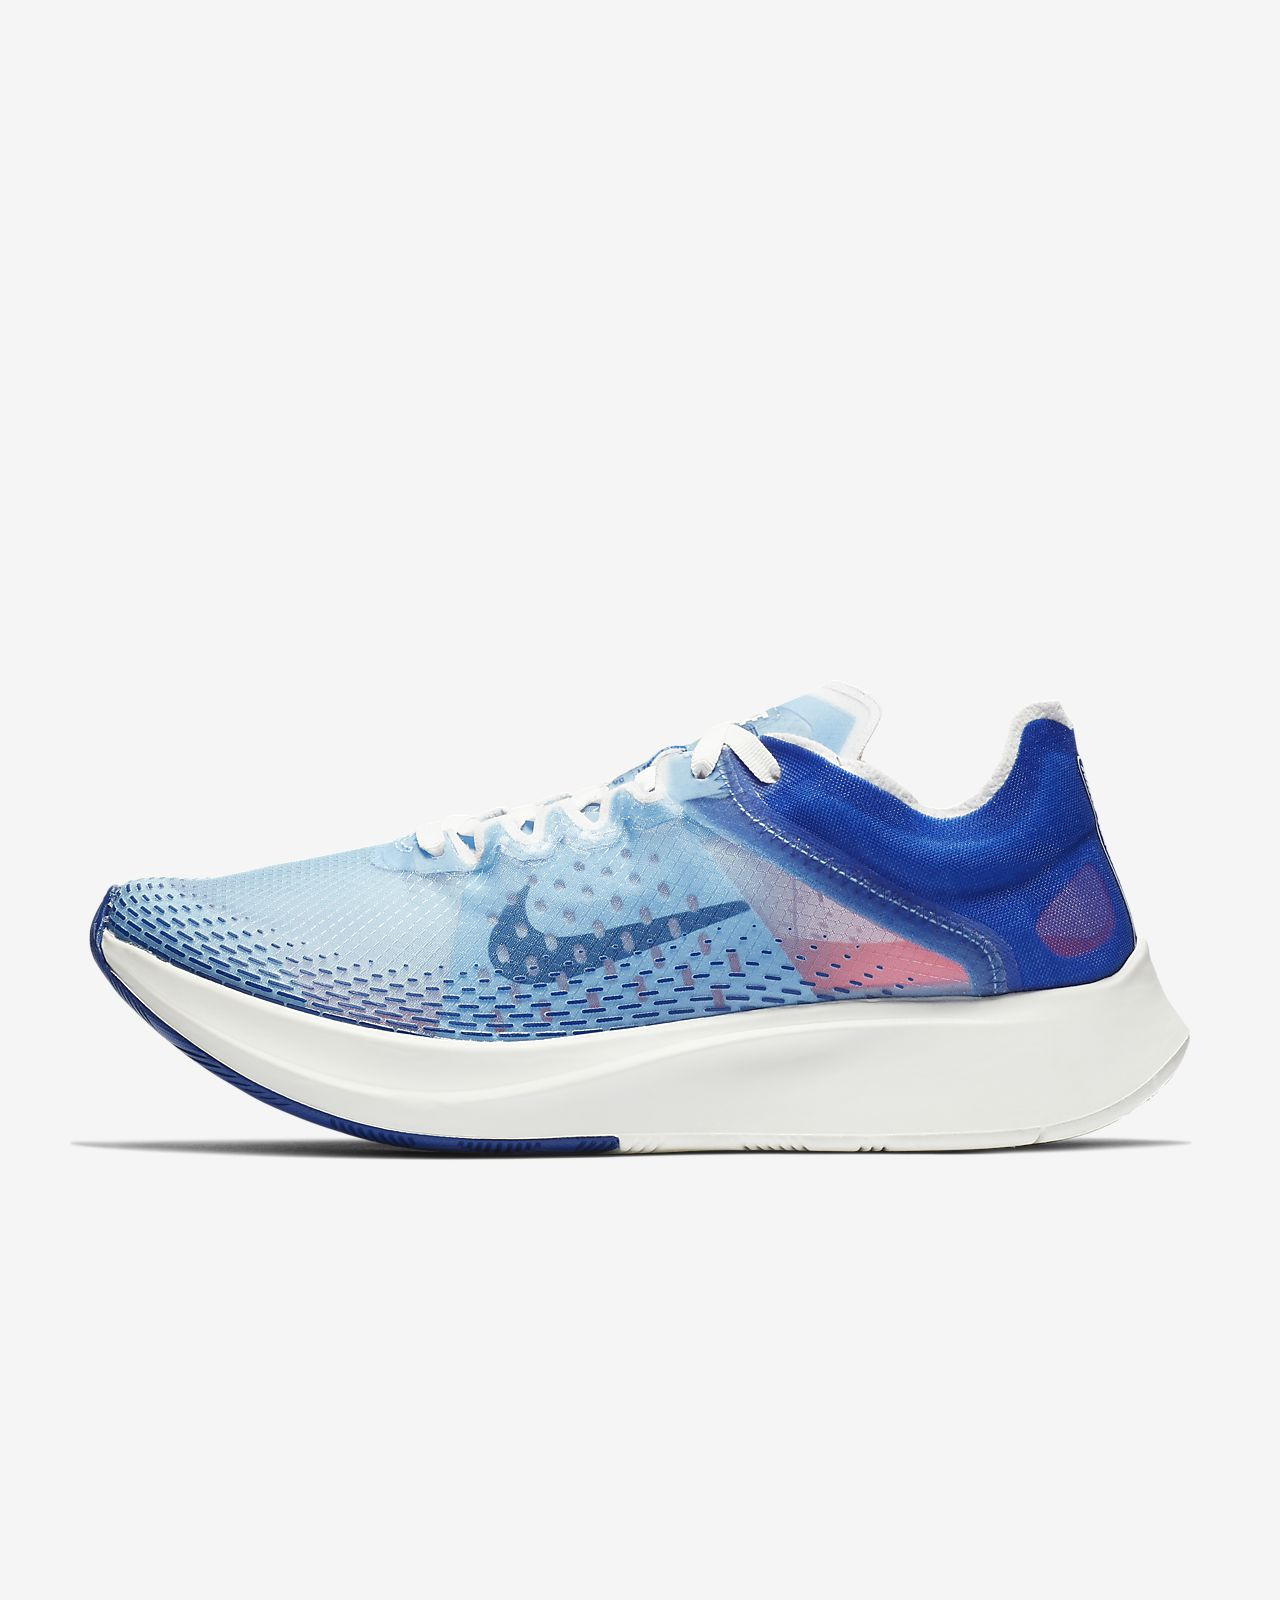 Nike Zoom Fly SP Fast Women's Running Shoe